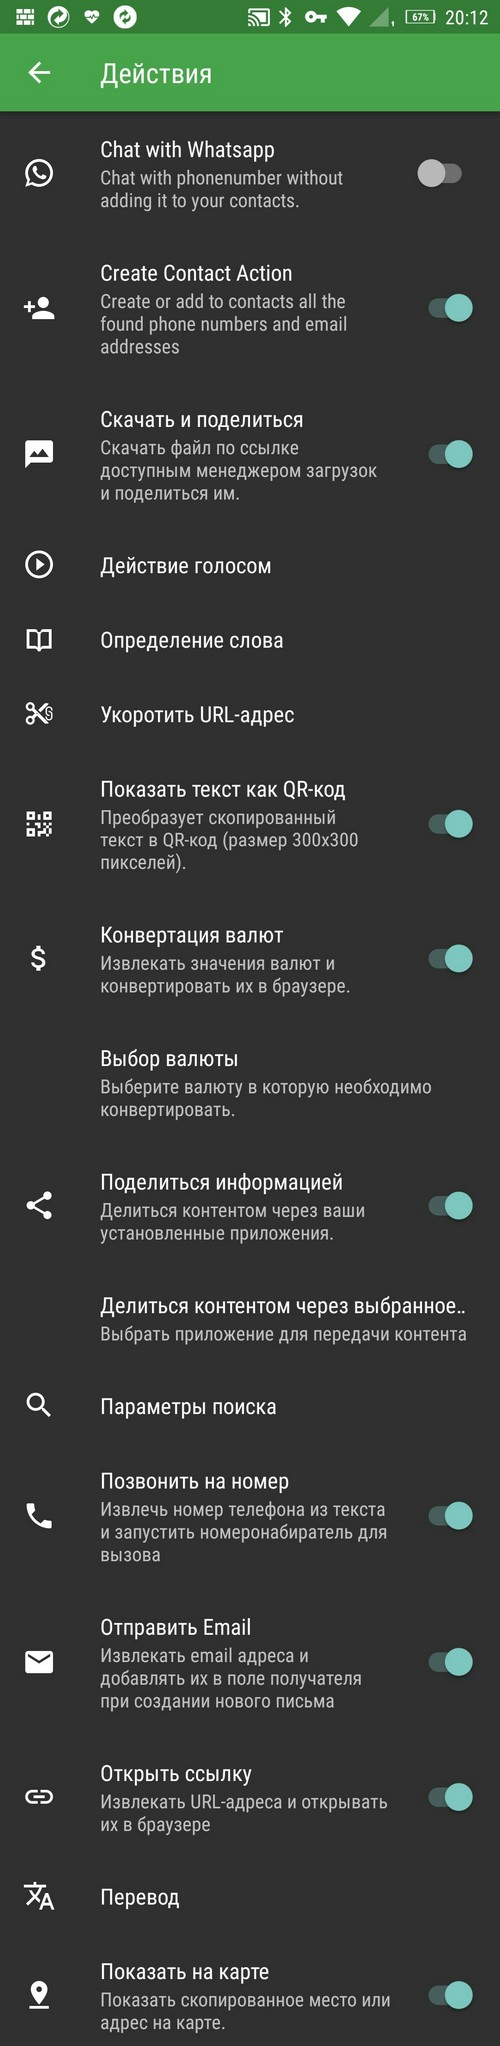 Clipboard Manager for Android